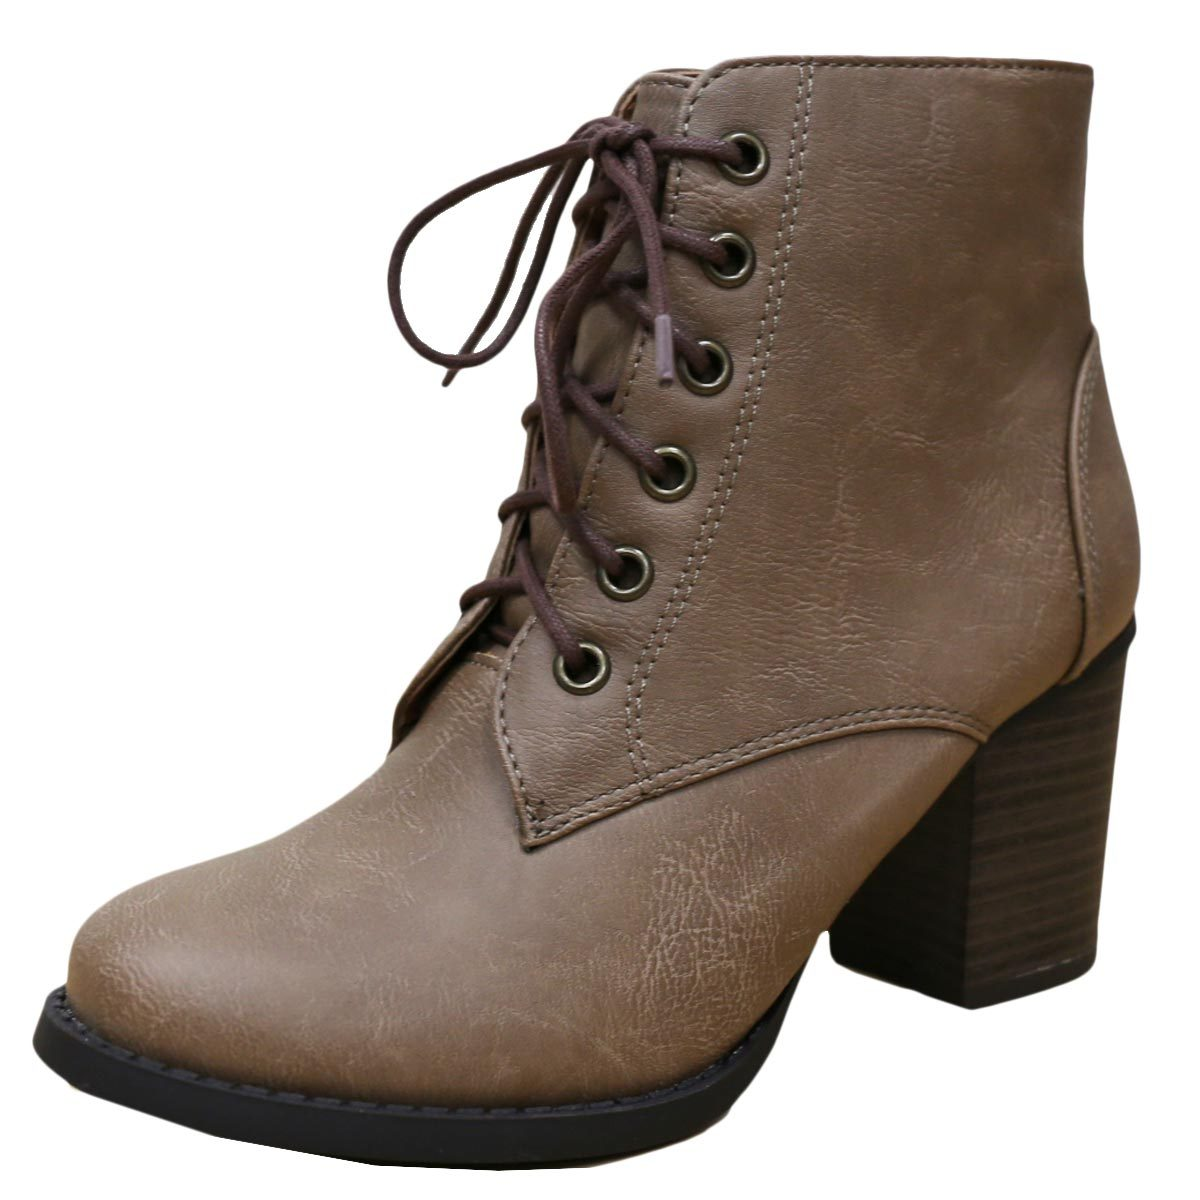 047a6a43cc03 Cambridge select women s zipper lace up chunky heel ankle bootie